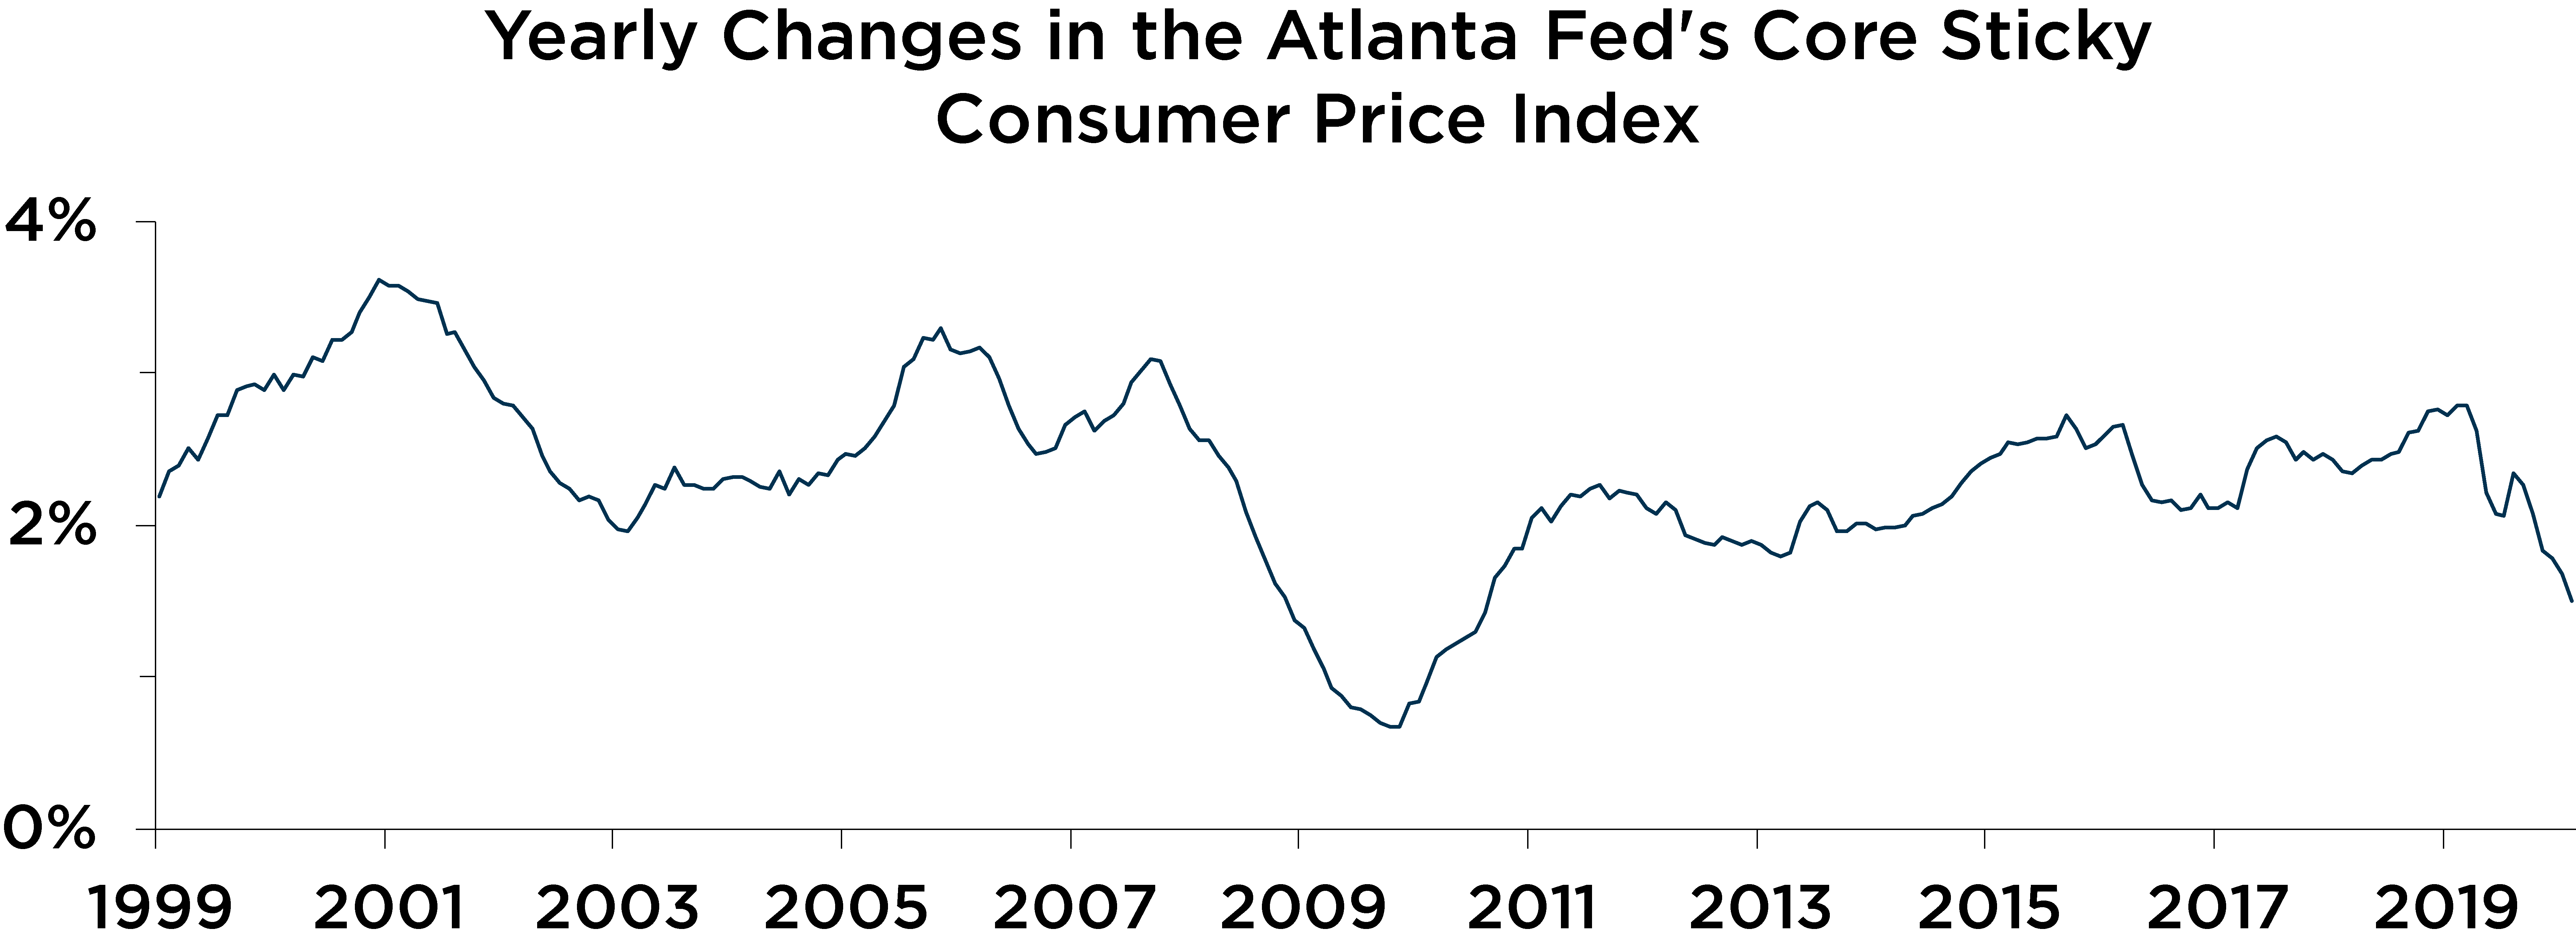 Graph depicting yearly changes in the Atlanta Fed's core sticky consumer price index